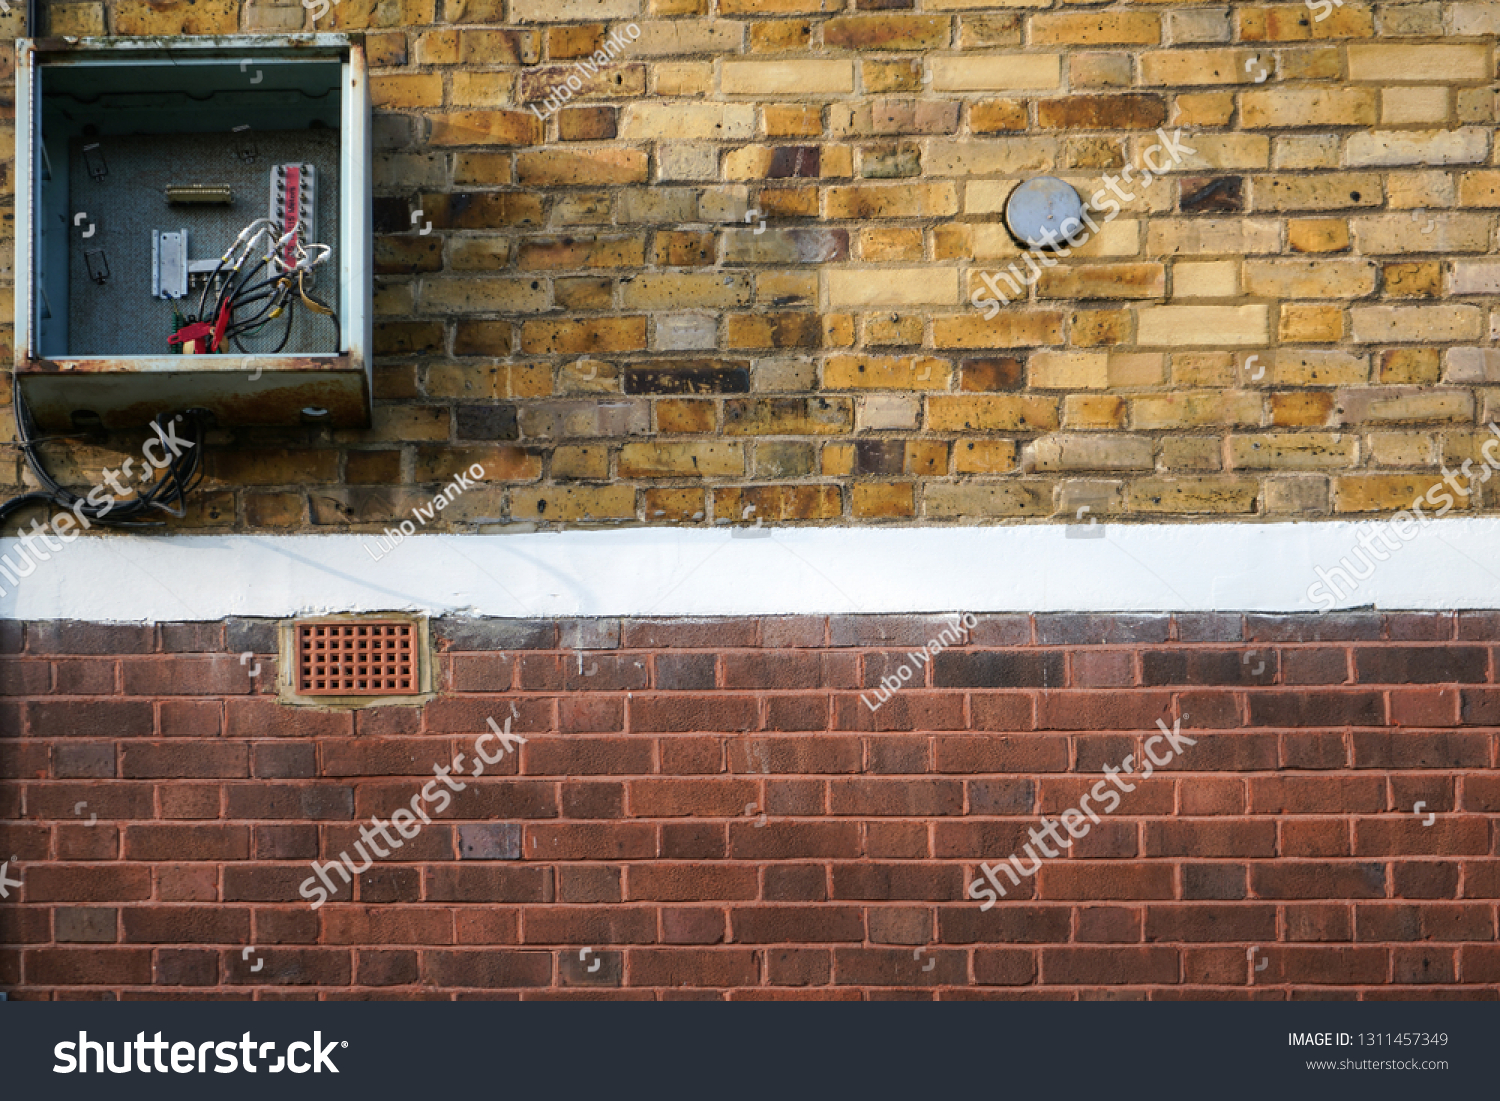 hight resolution of bricks wall with electricity fuse box on it opened cover missing cables